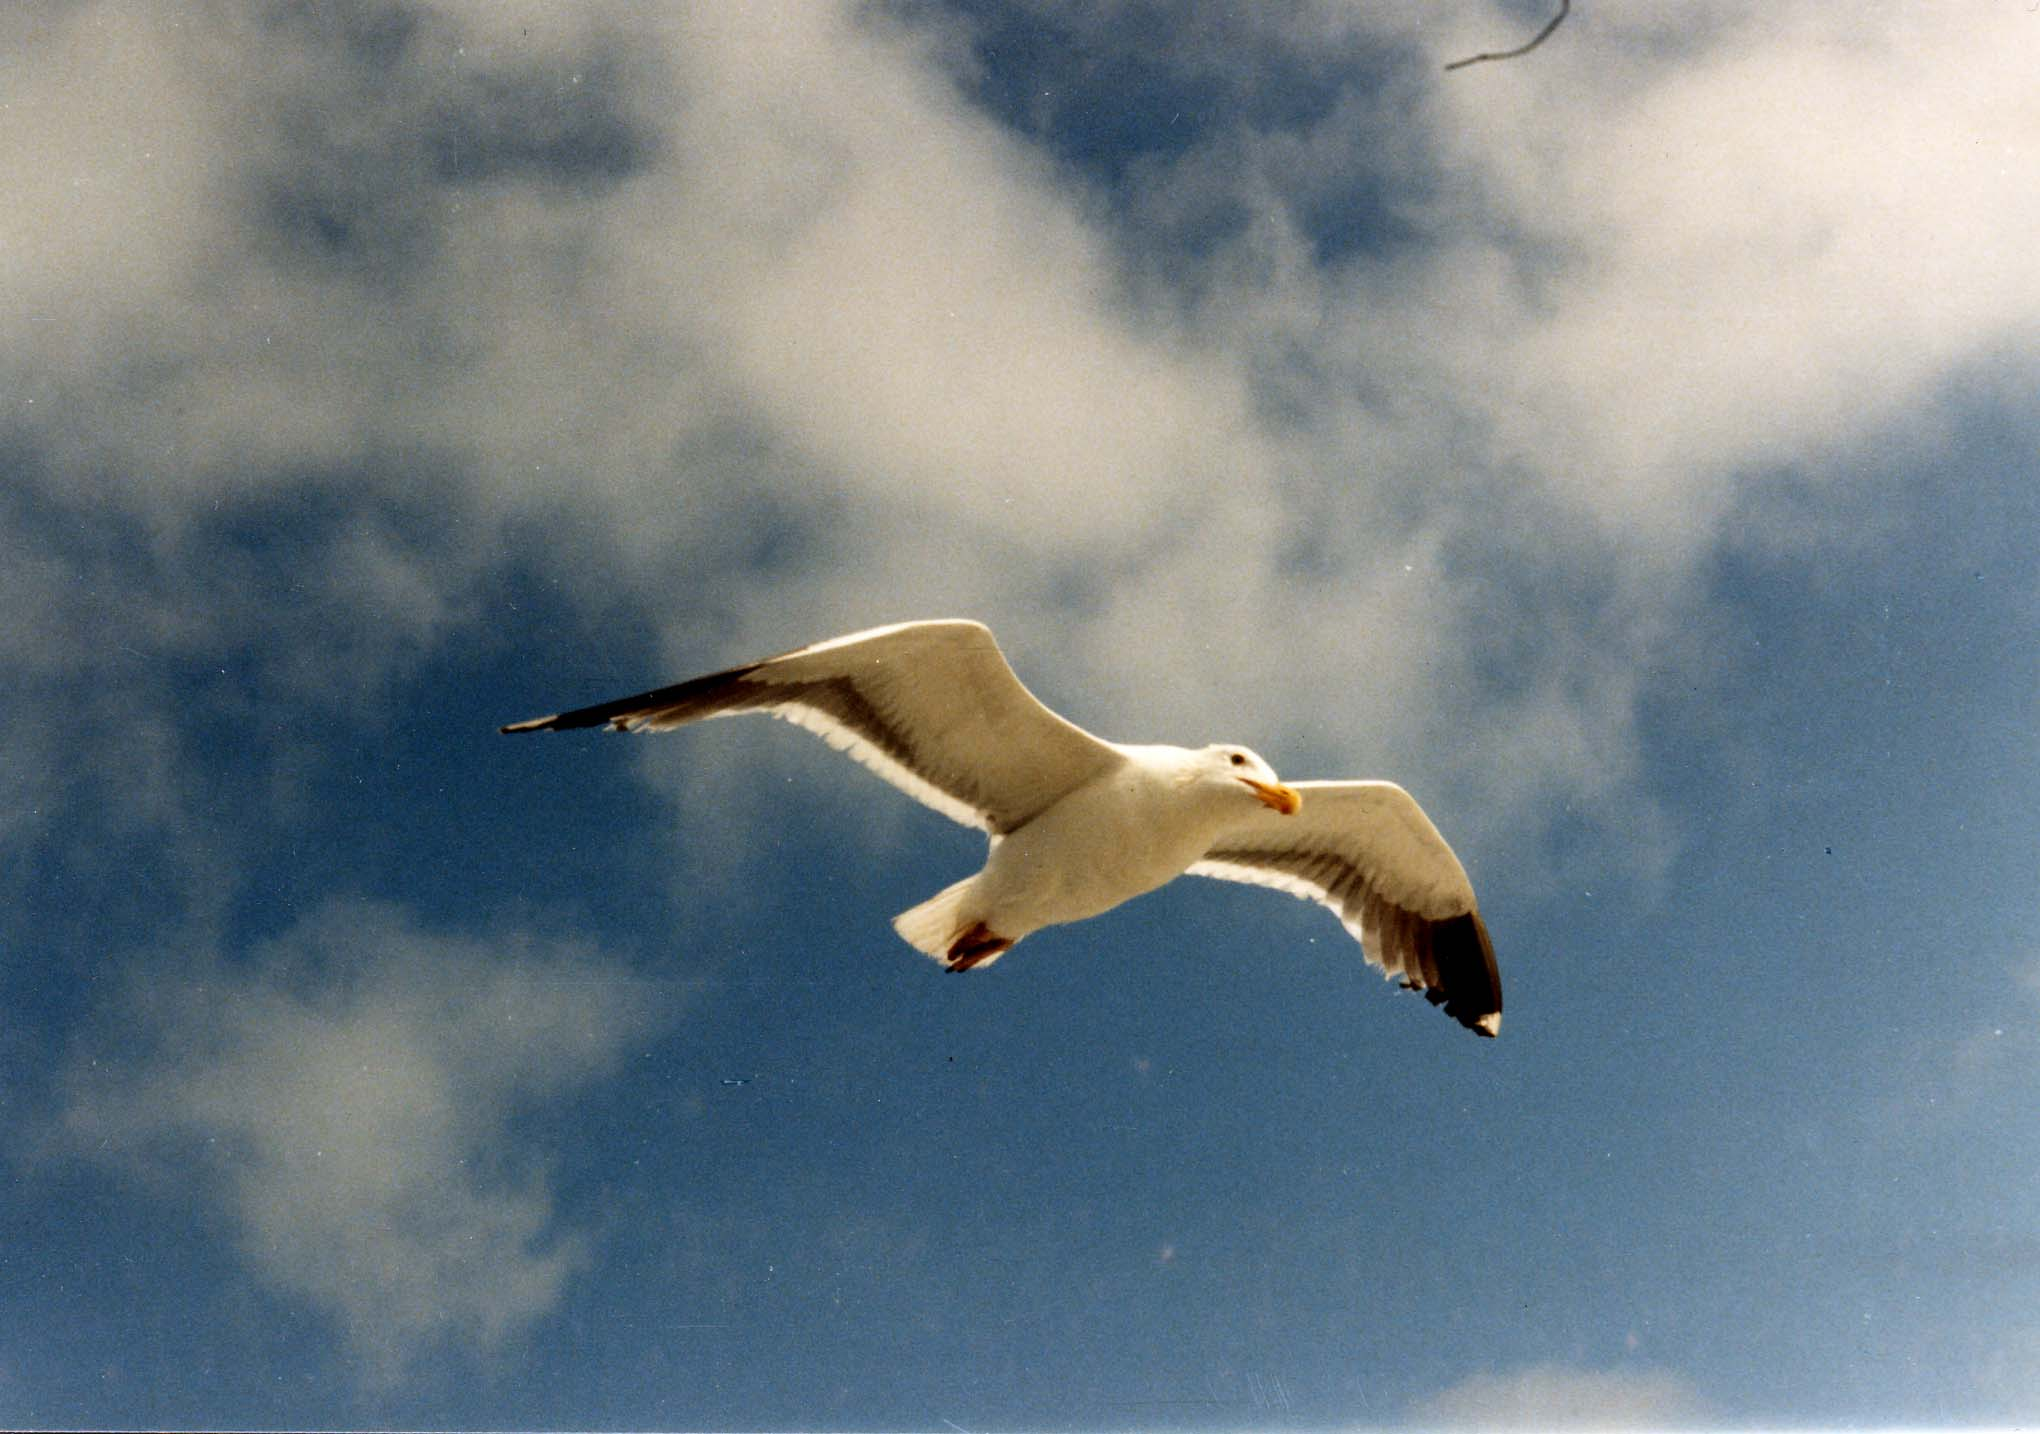 http://h3.homestead.com/Jonathan_Livingston_Seagull_taken_by_Mom_for_Dad.jpg